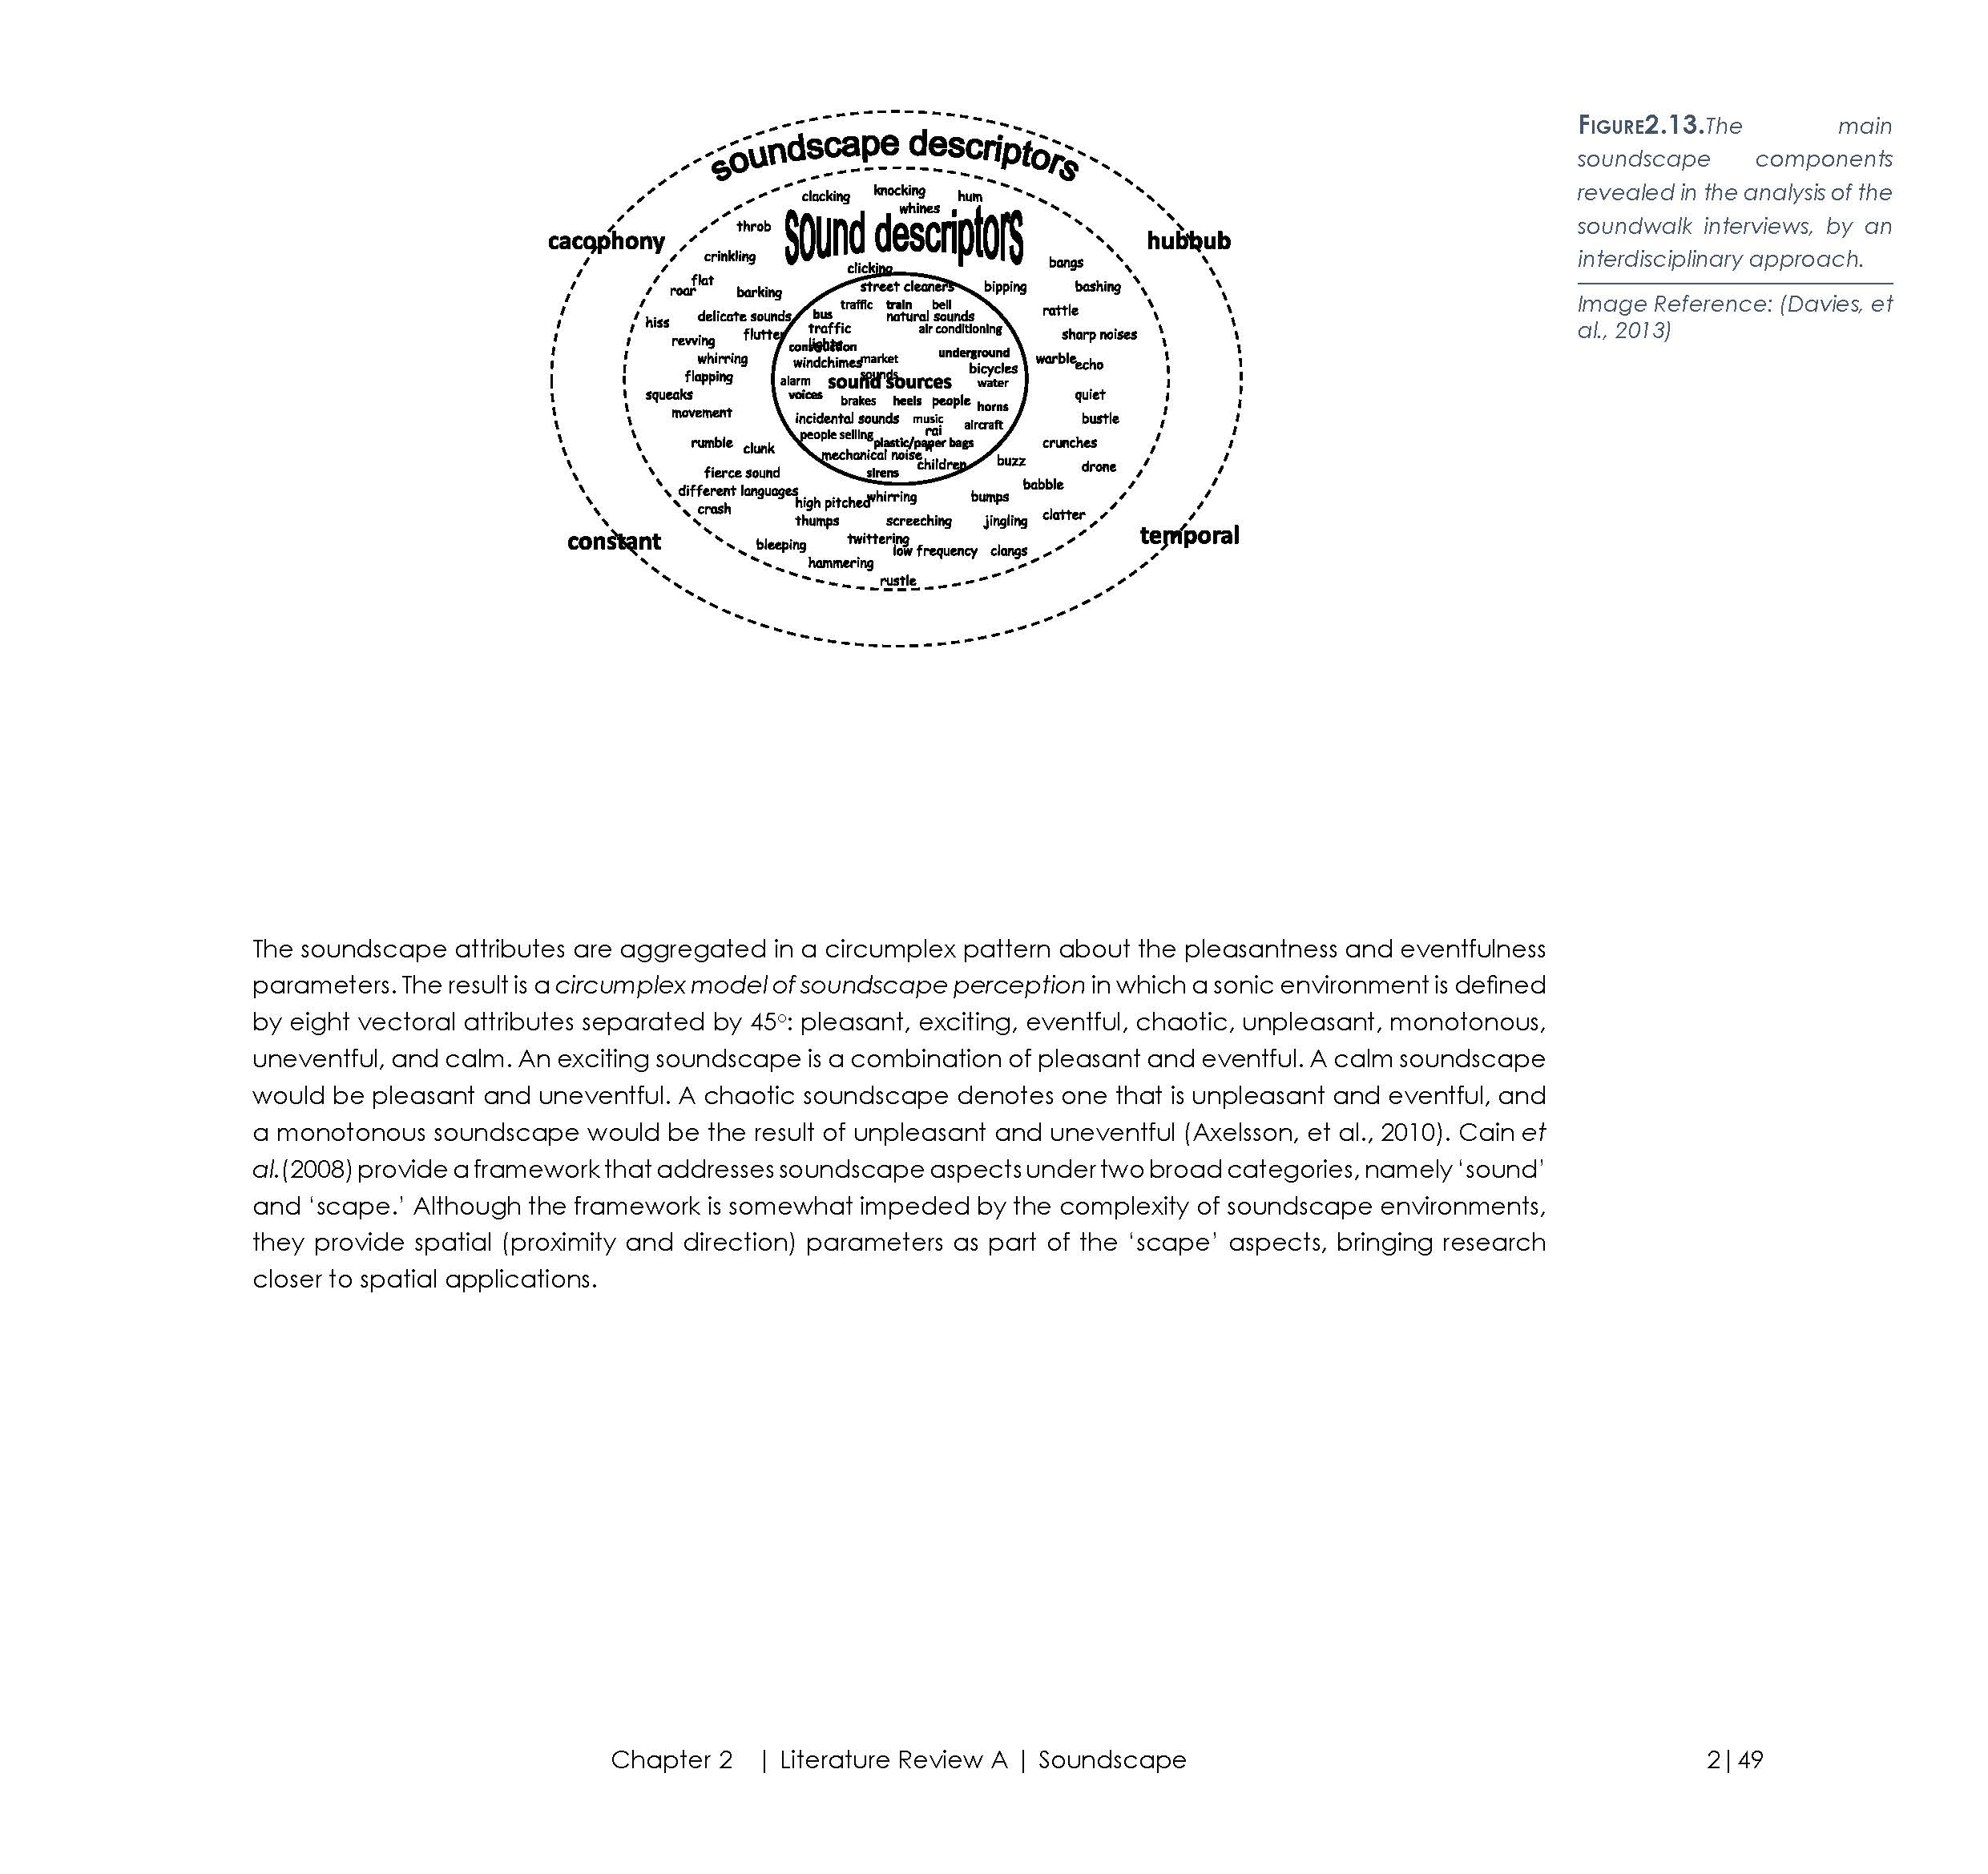 16.03.03_Thesis_01_Interactive_Page_085.jpg